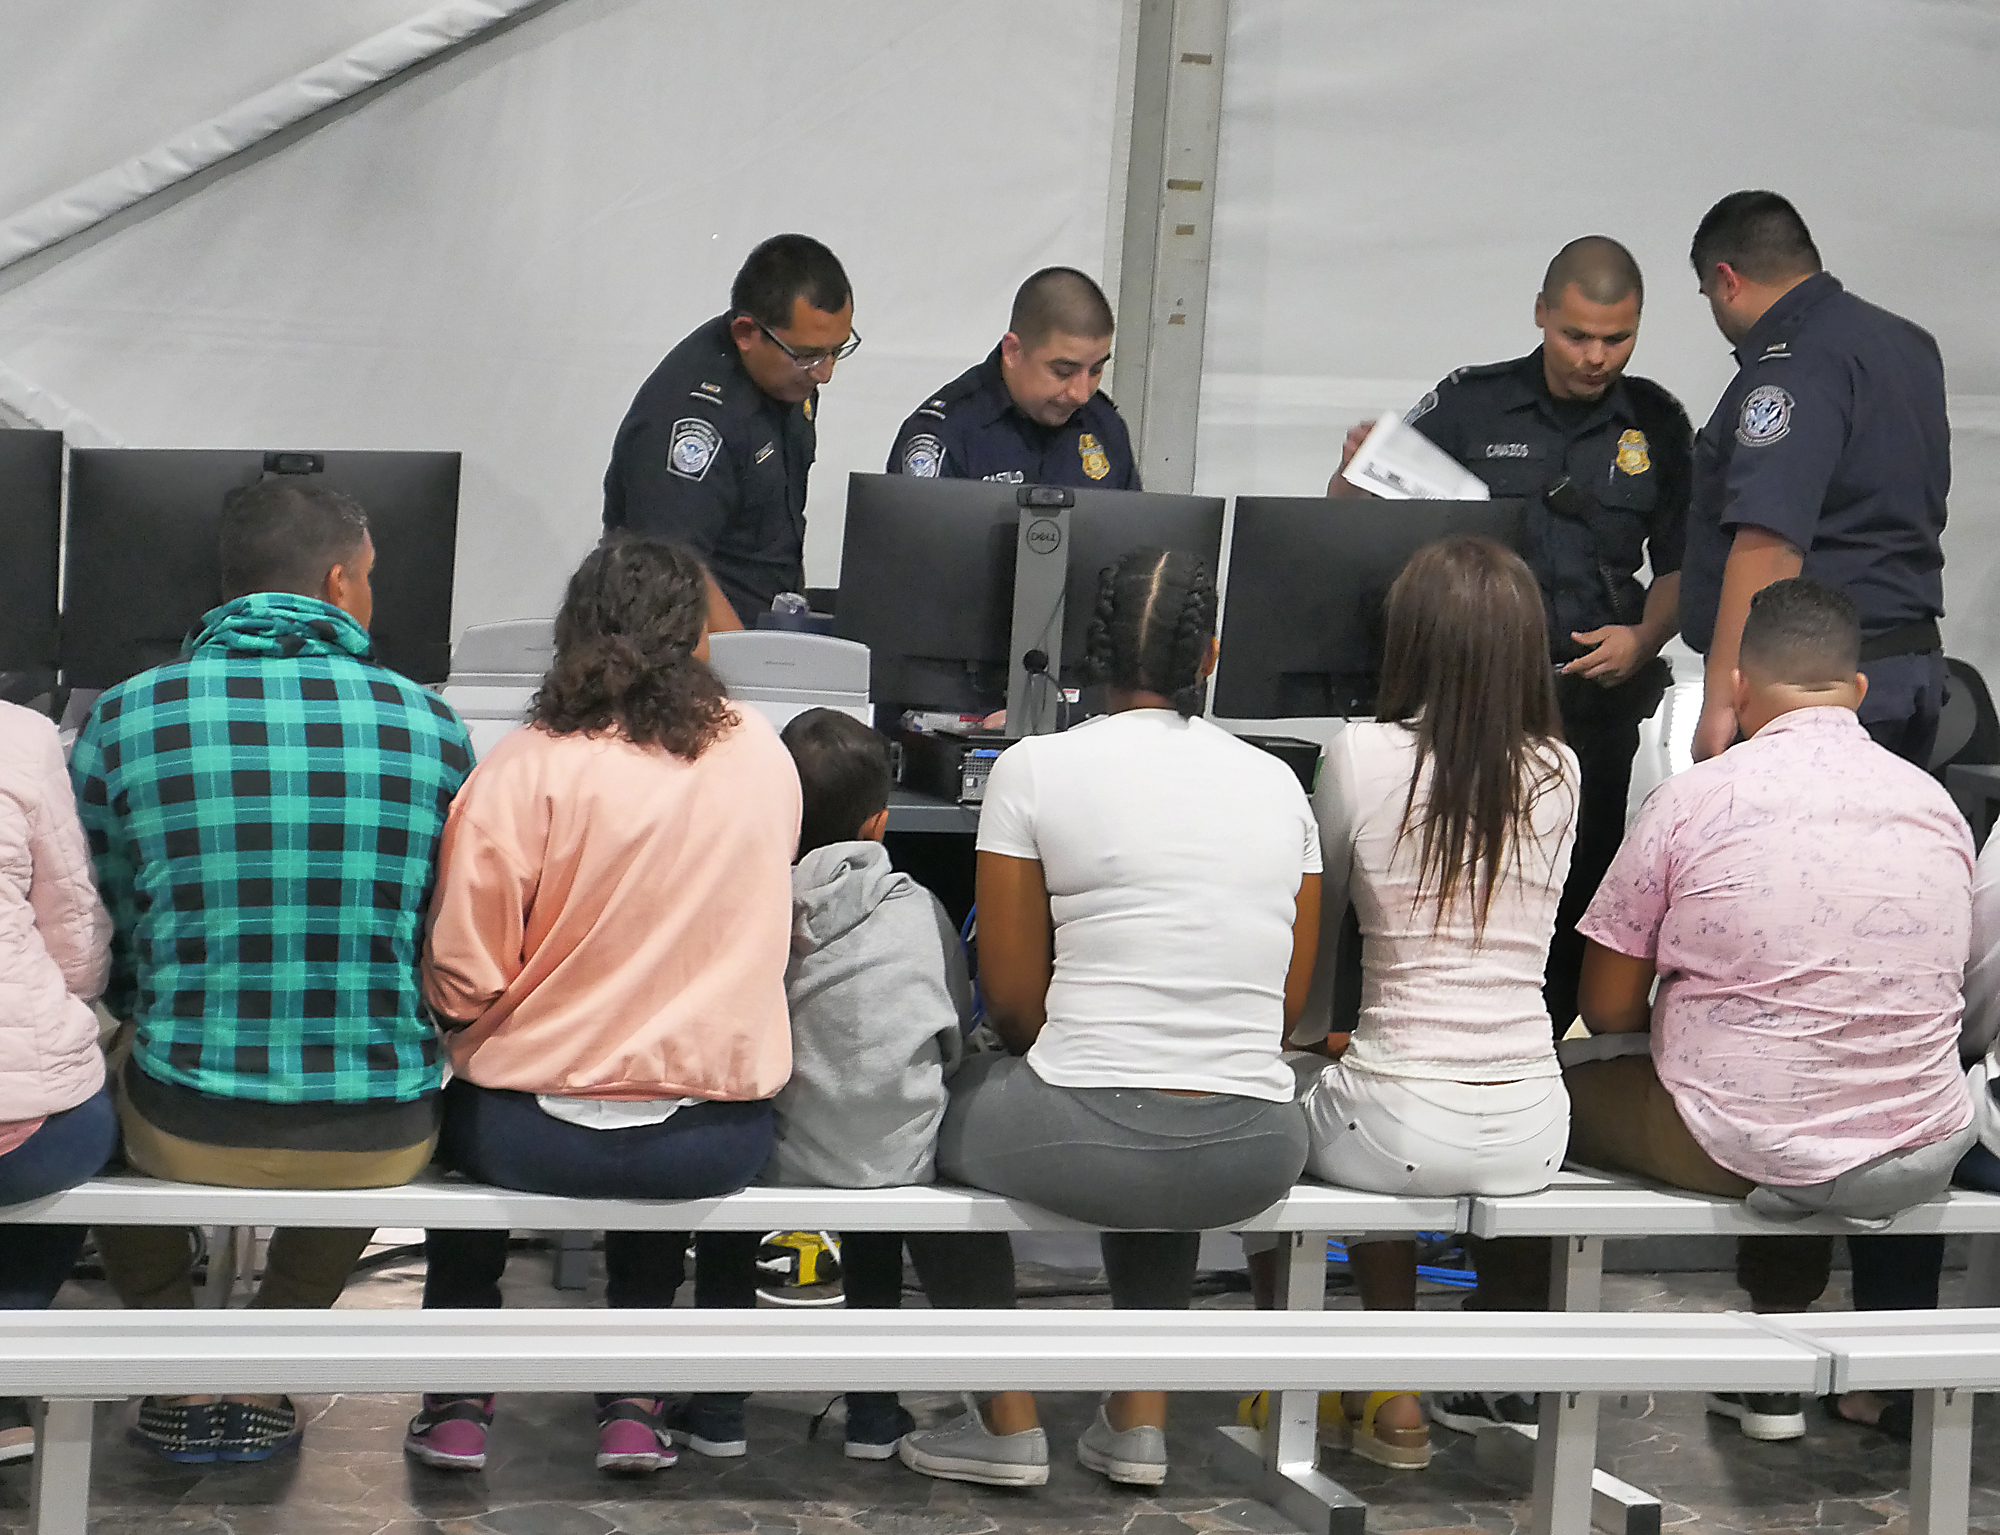 Migrants in fear, await fate as officials tour migrant facility in Laredo